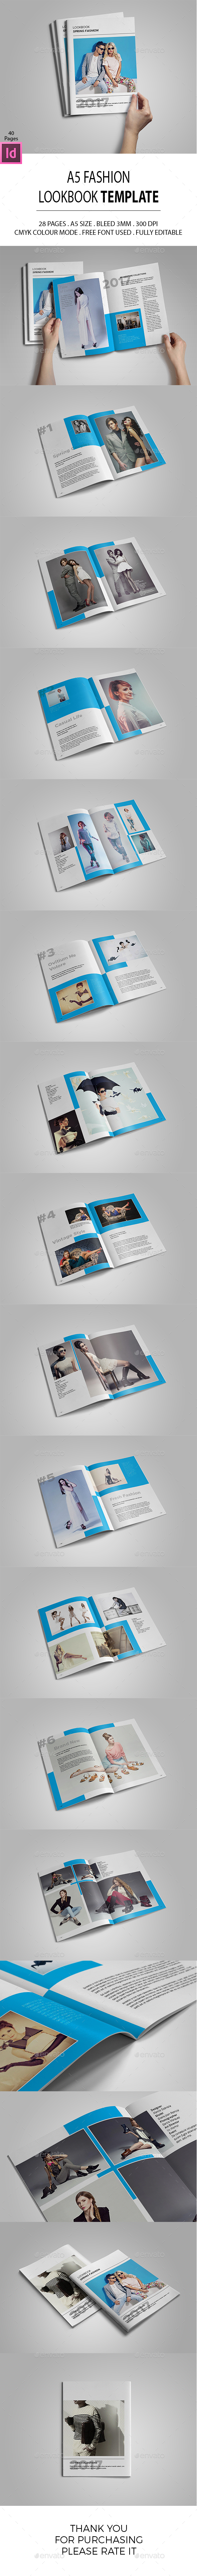 A5 Lookbook Template - Catalogs Brochures